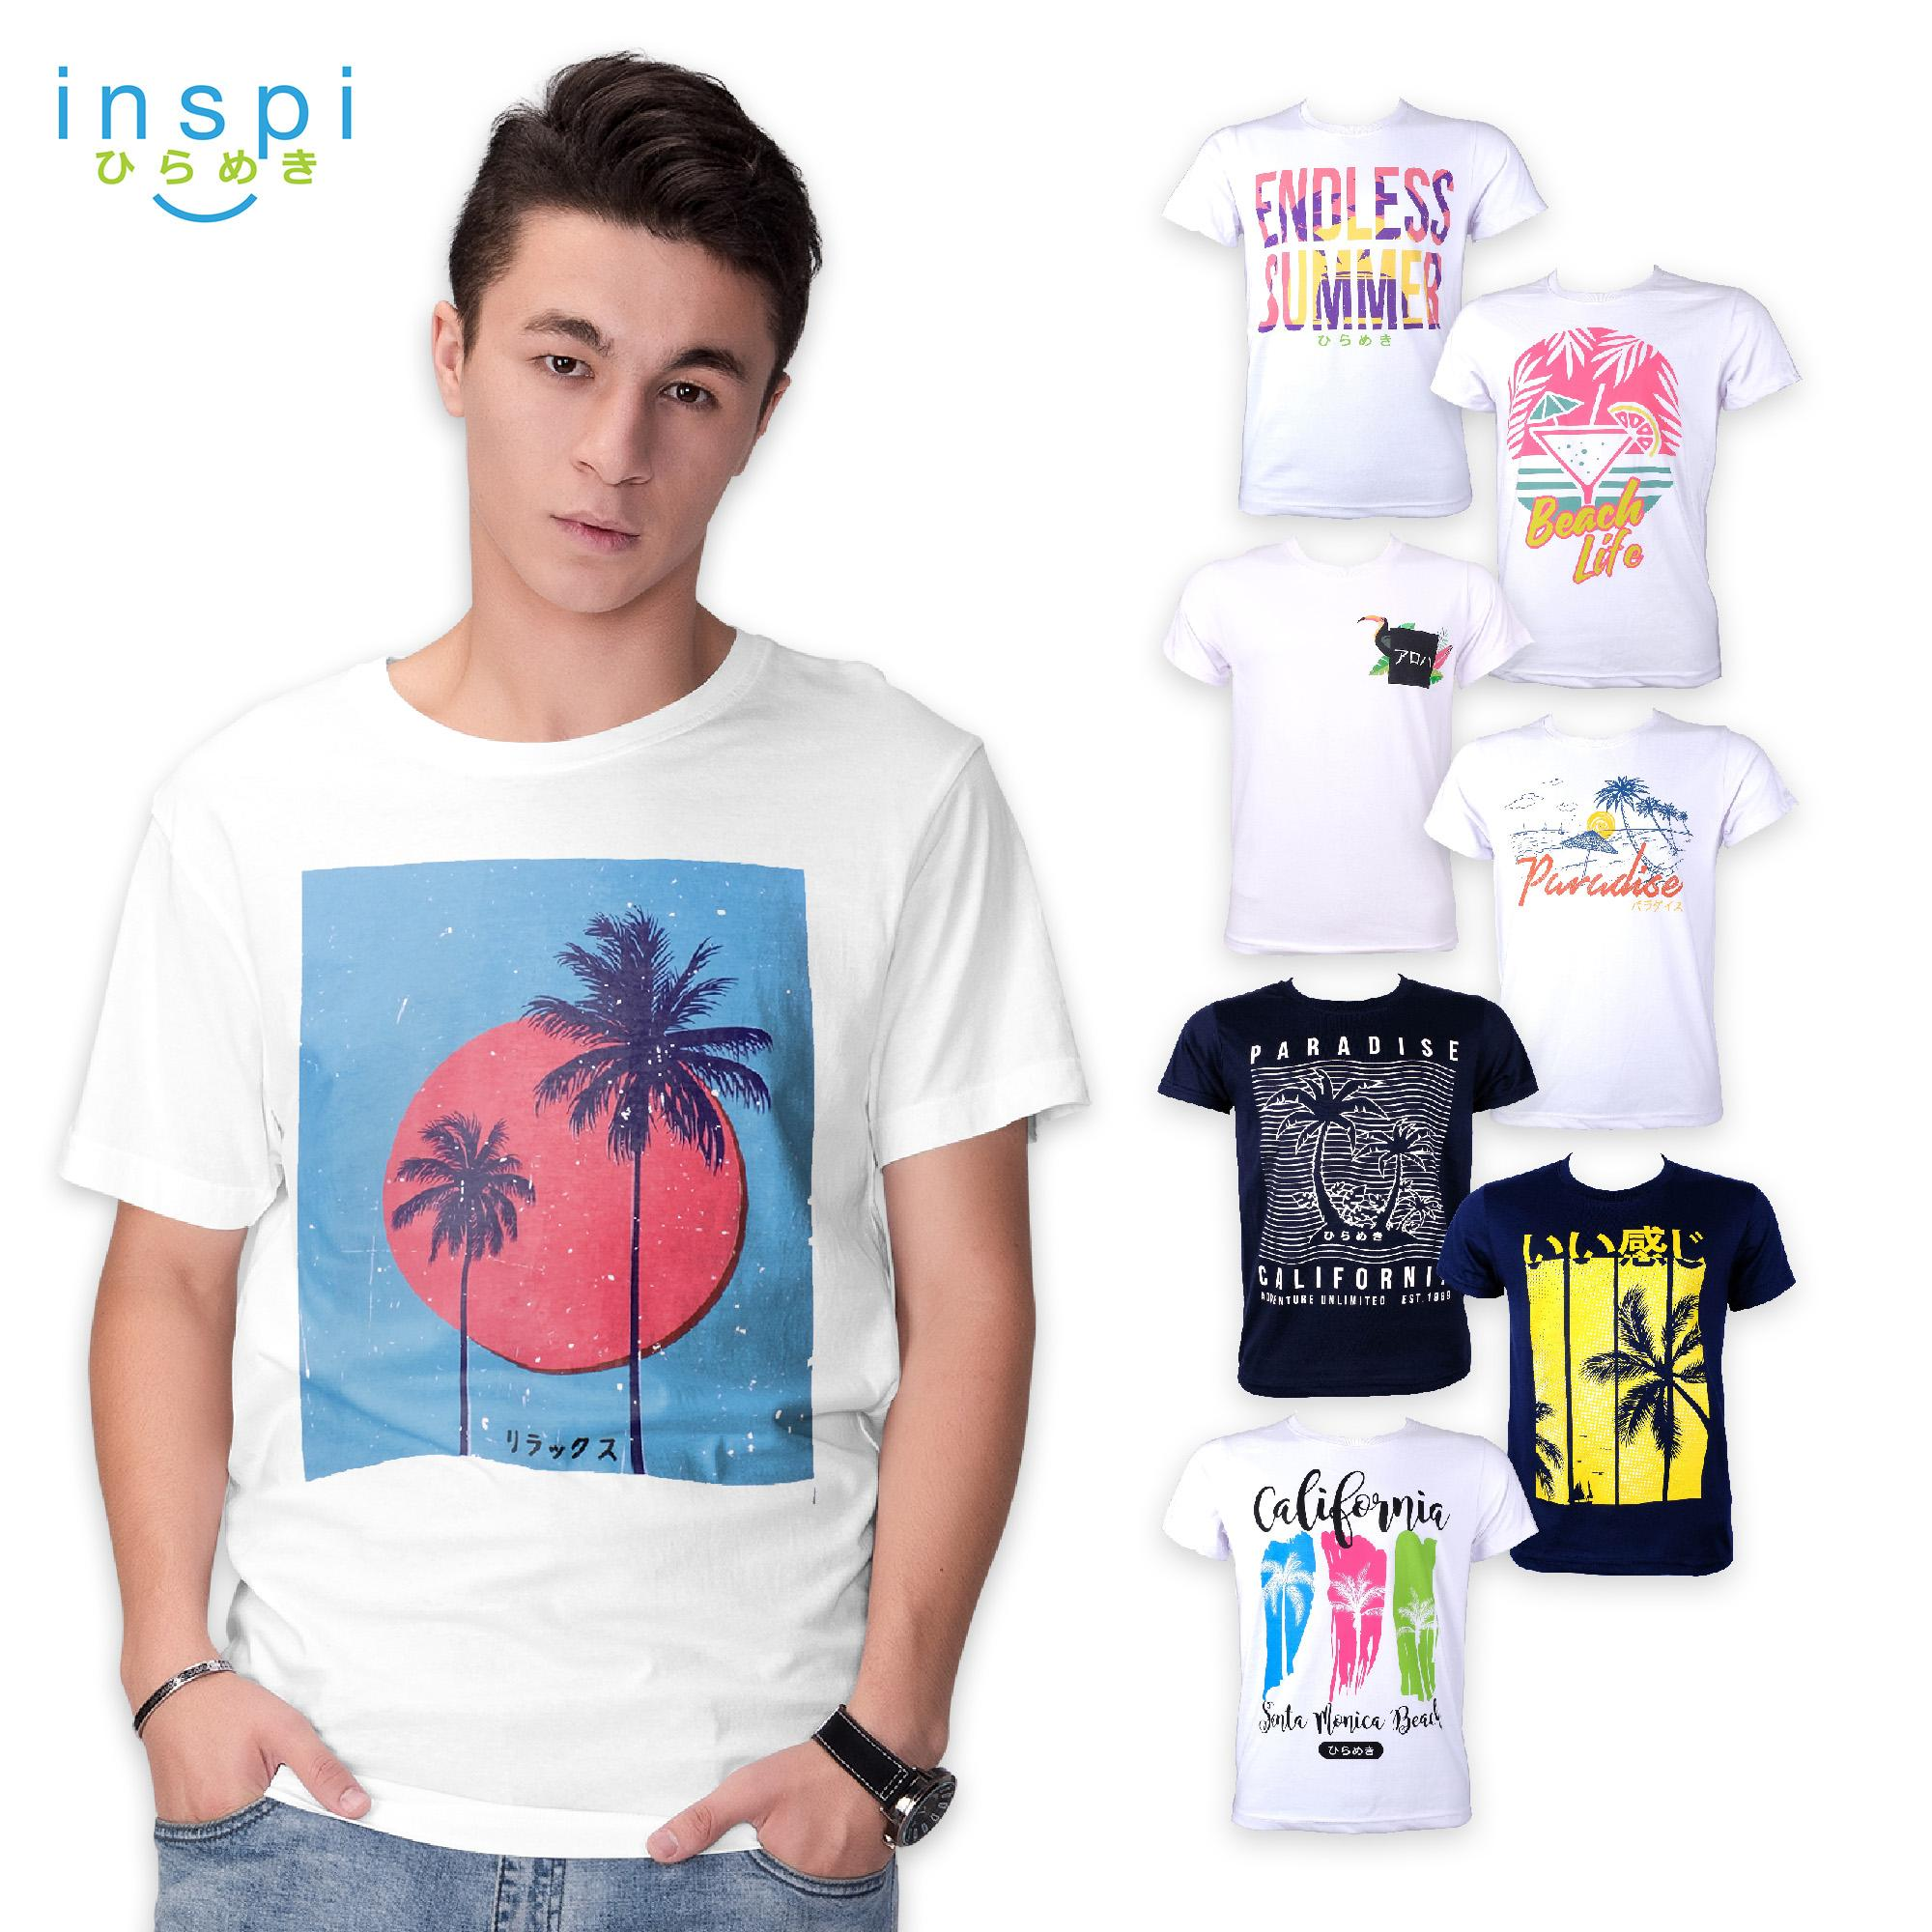 784c6a77cd69e INSPI Tees Summer Collection tshirt printed graphic tee Mens t shirt shirts  for men tshirts sale